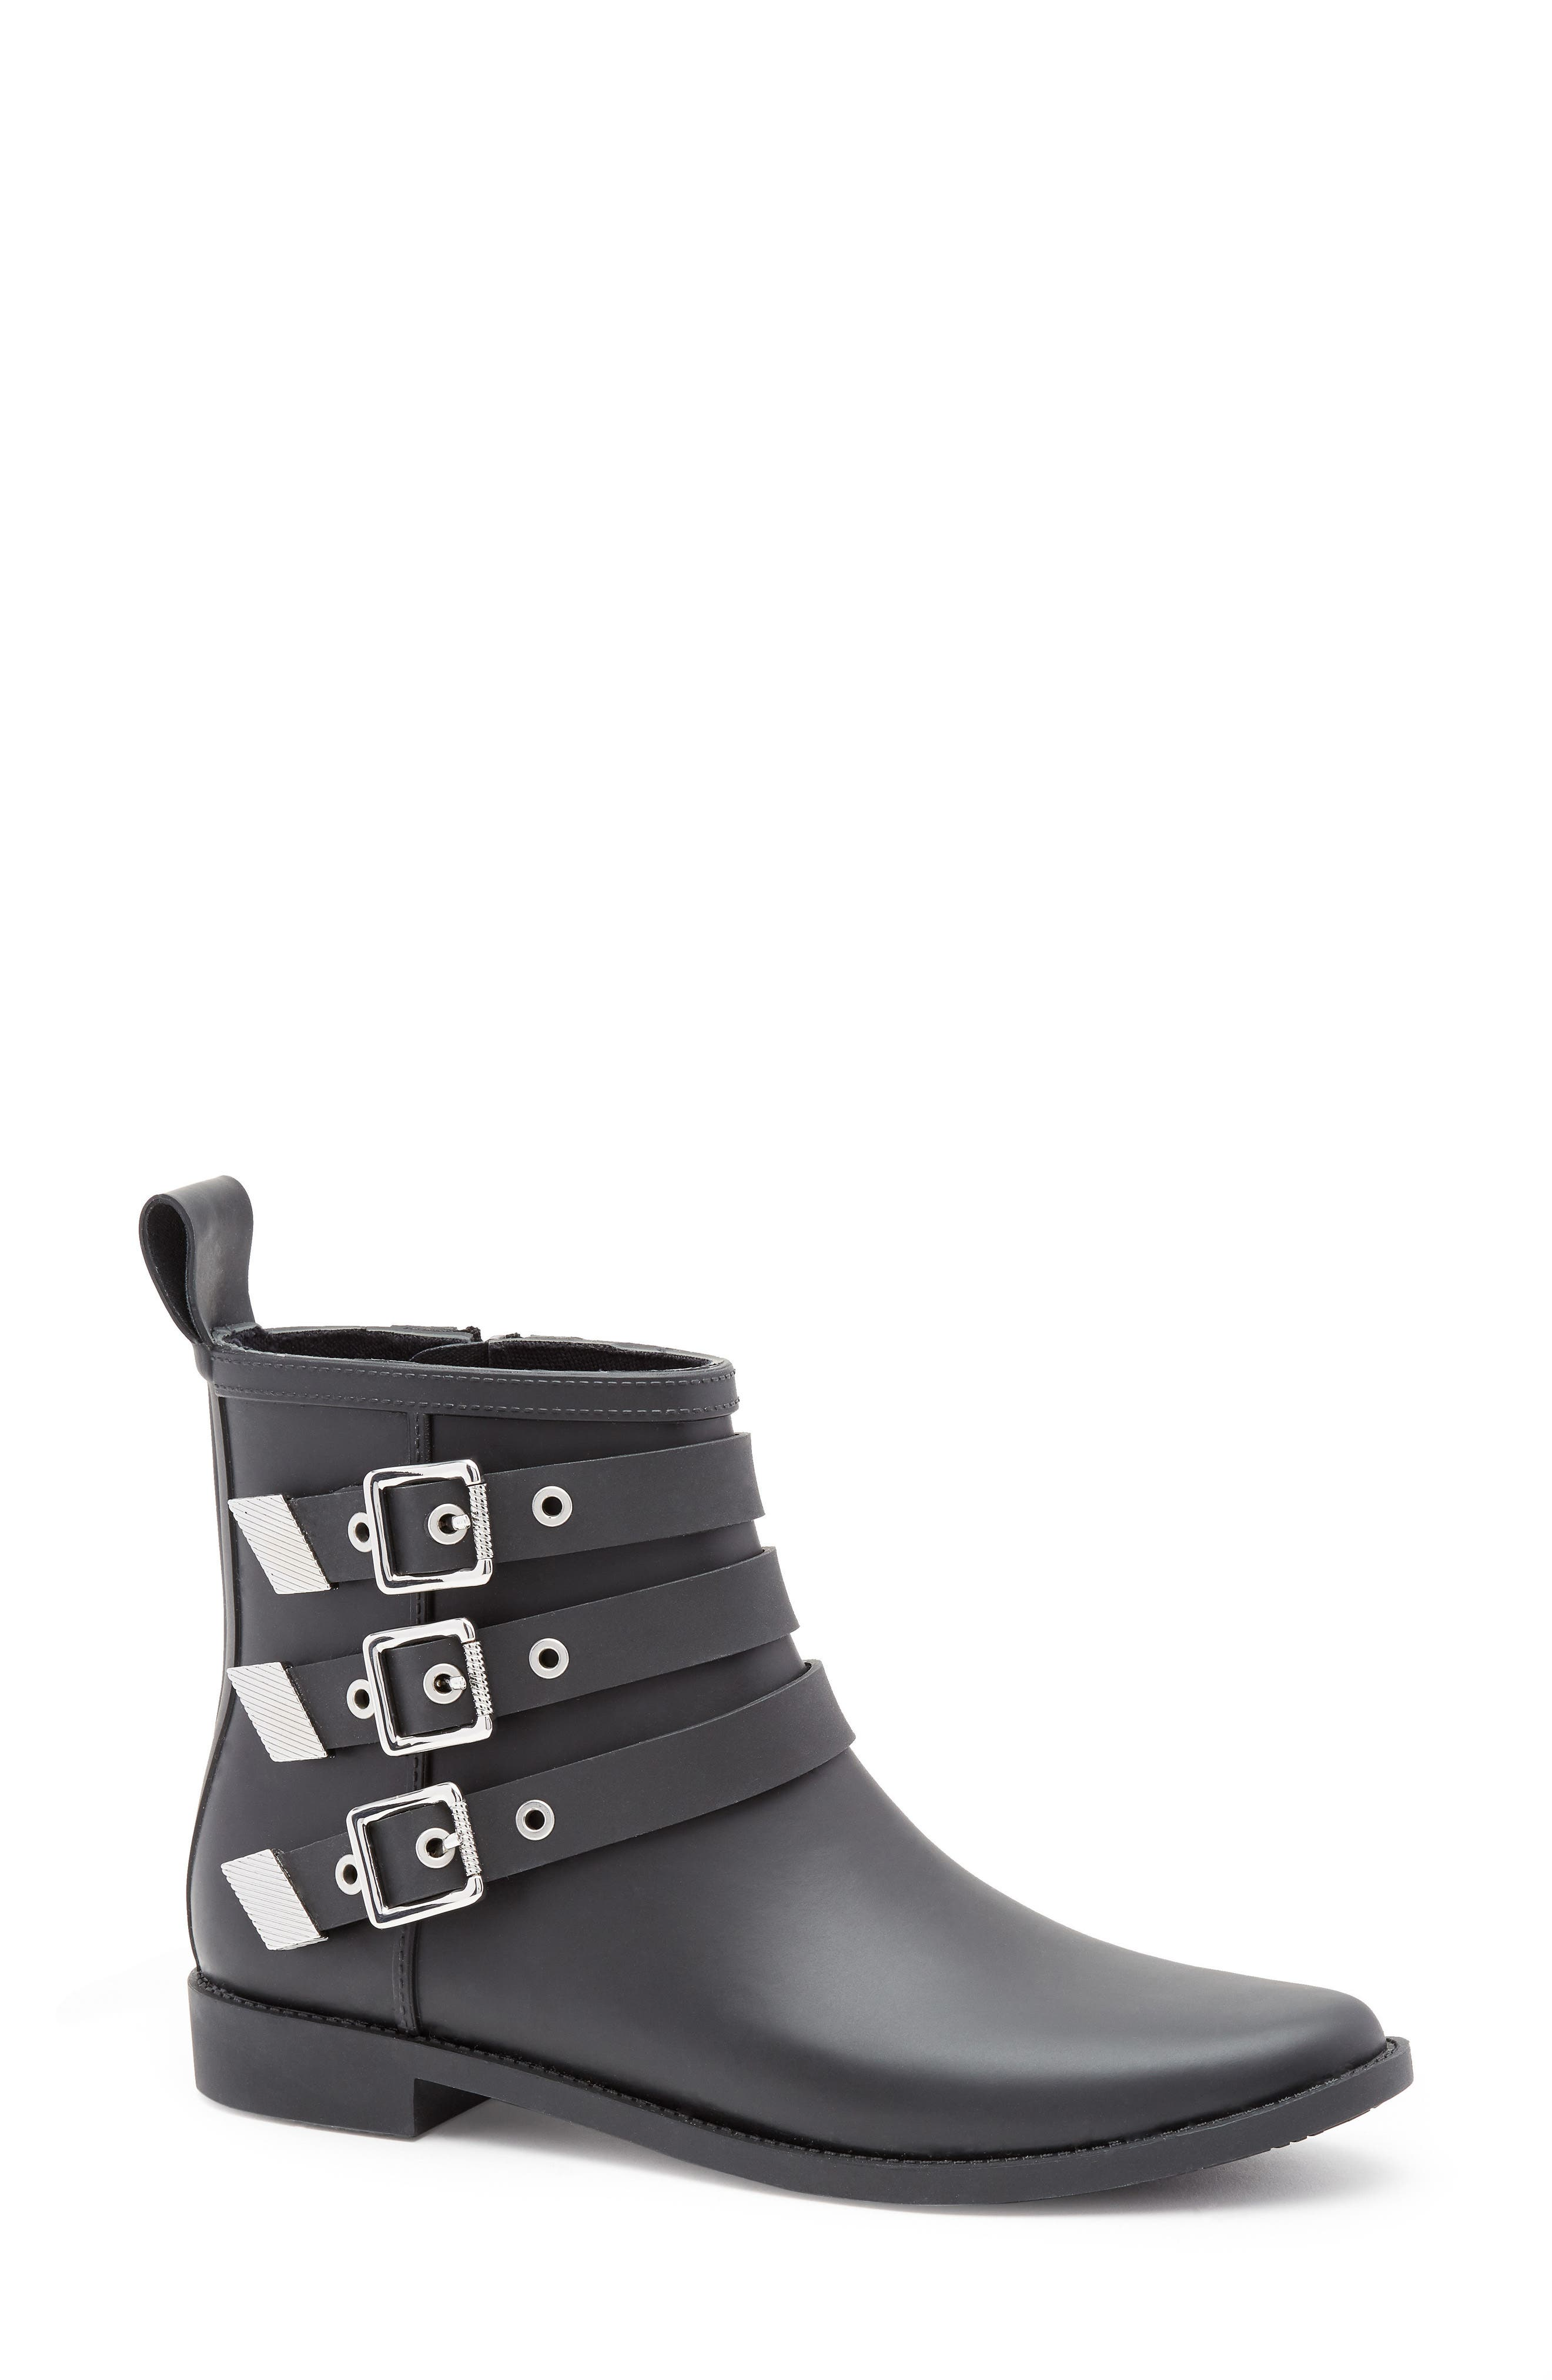 Alternate Image 1 Selected - Loeffler Randall Nash Buckle Strap Rain Bootie (Women)